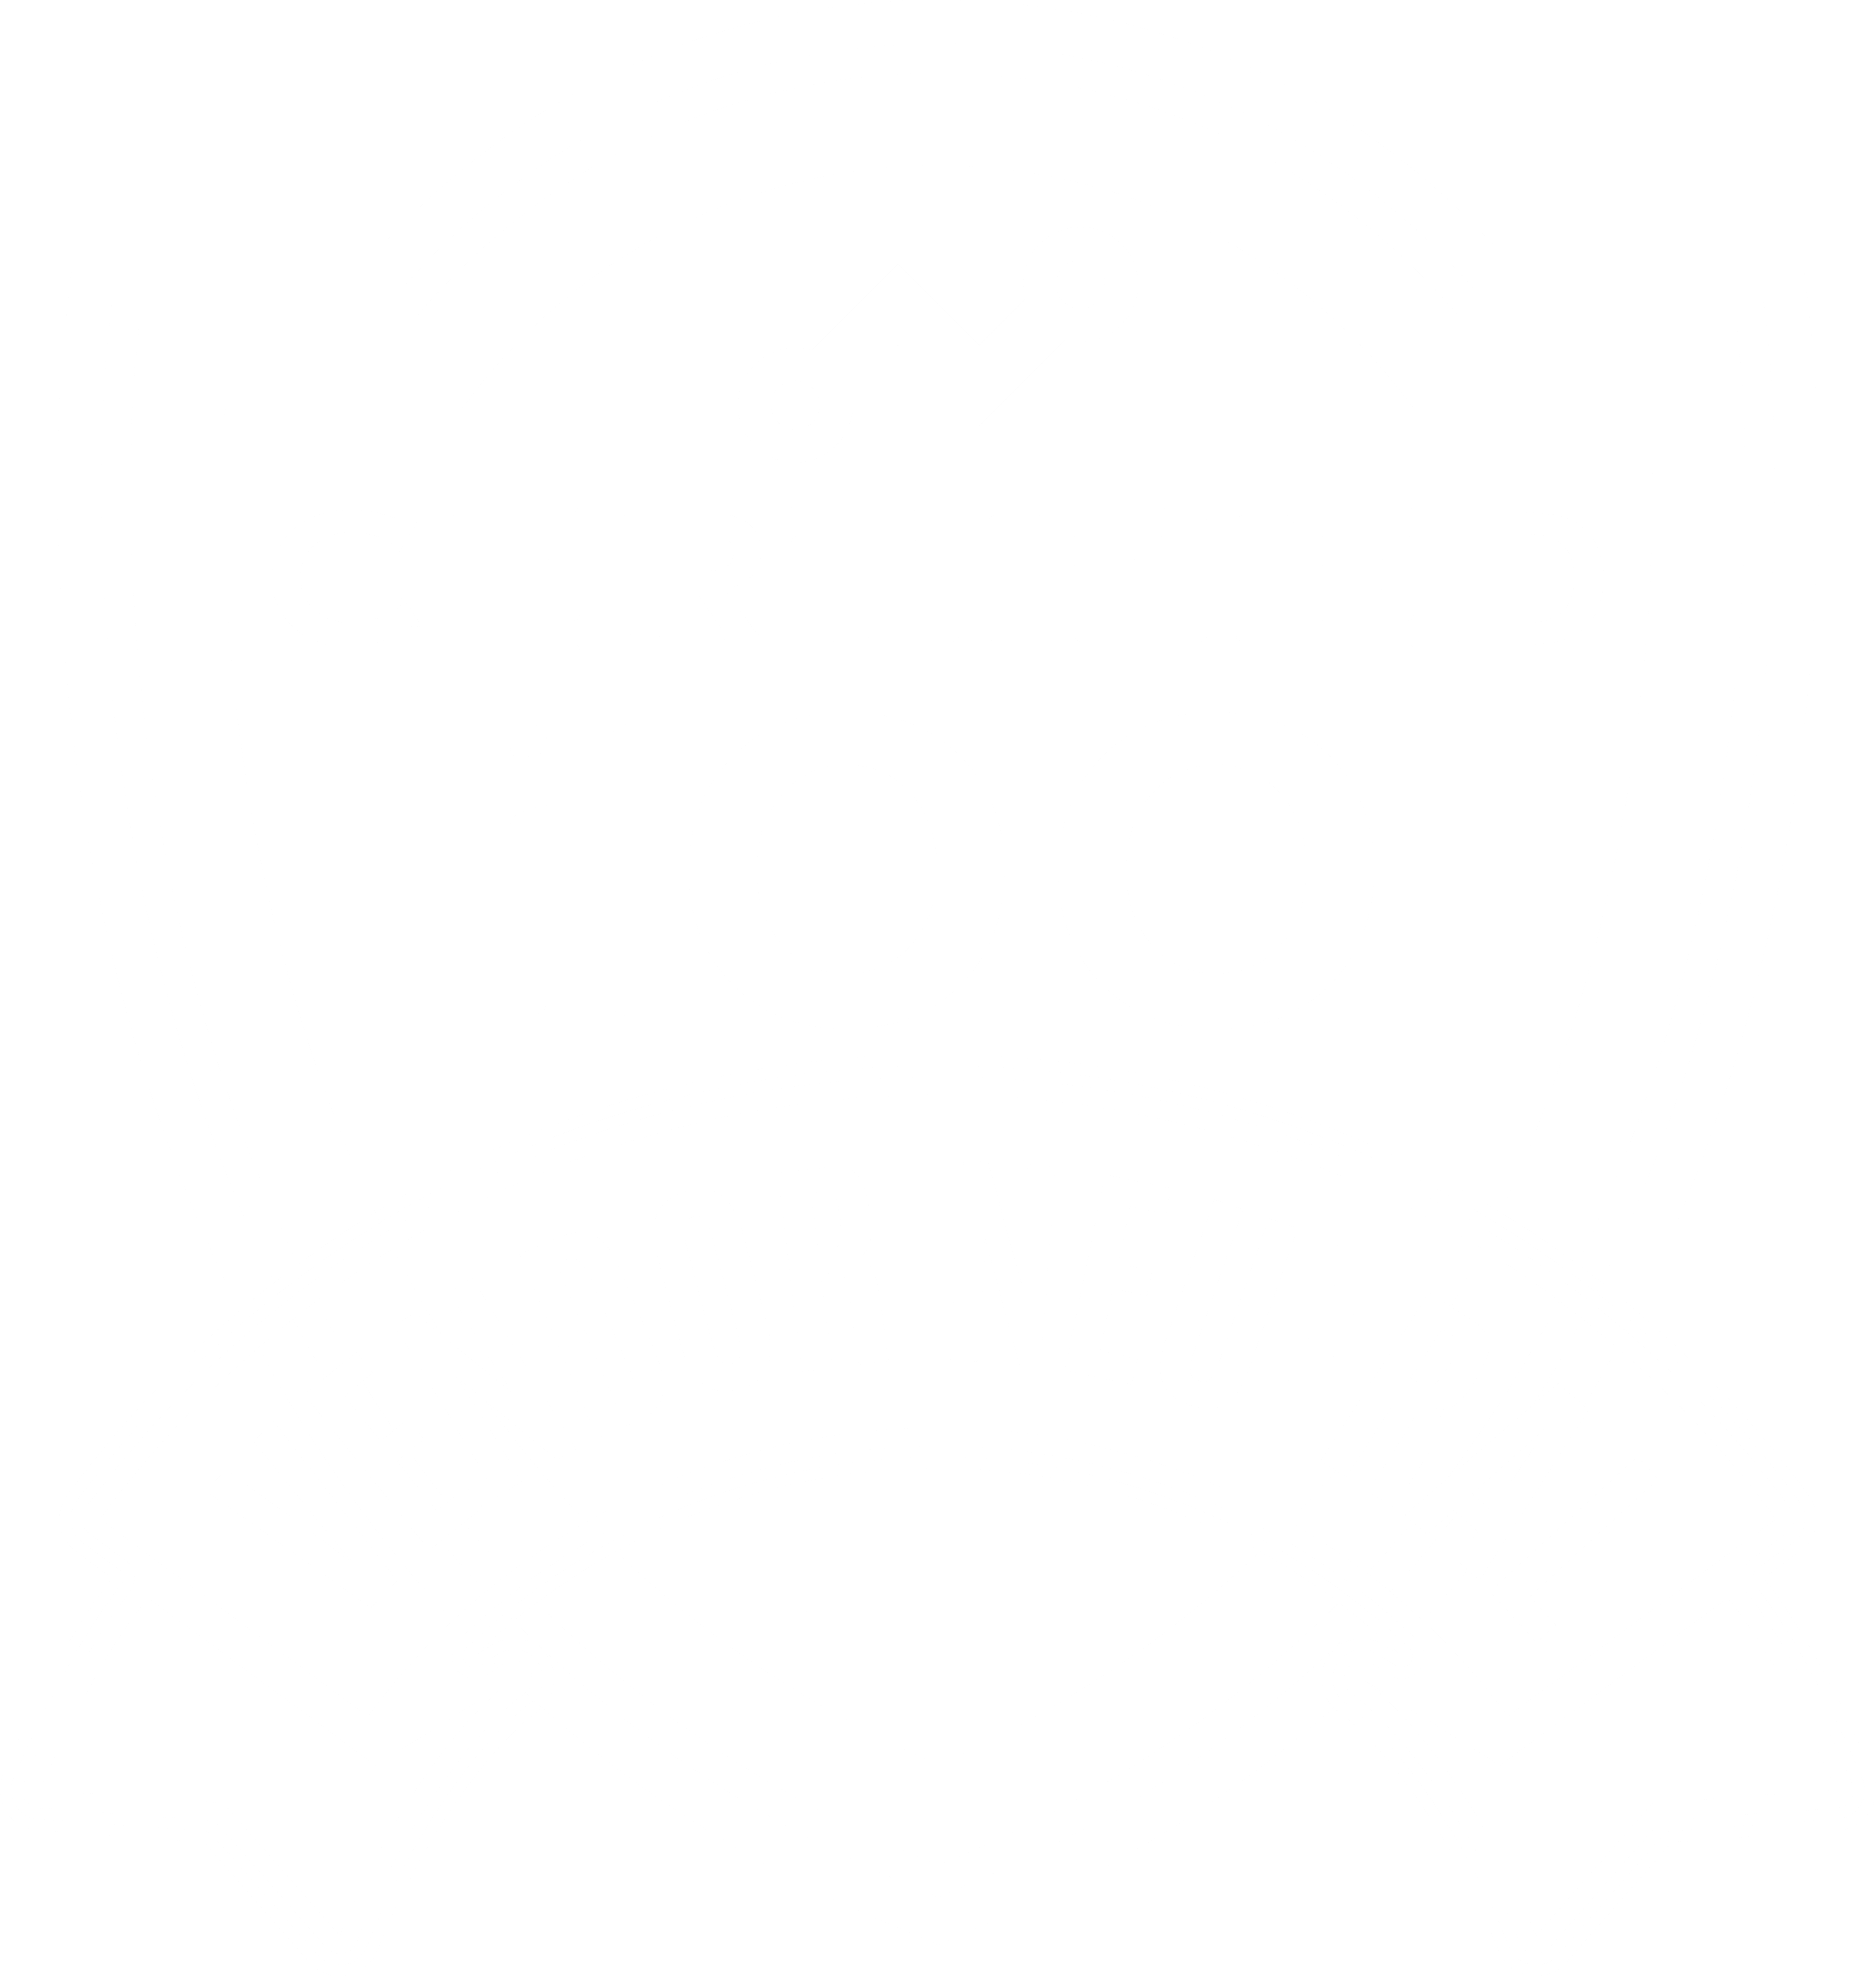 Vendor Neutral Certified 100 SalesTech Vendor Flipdeck